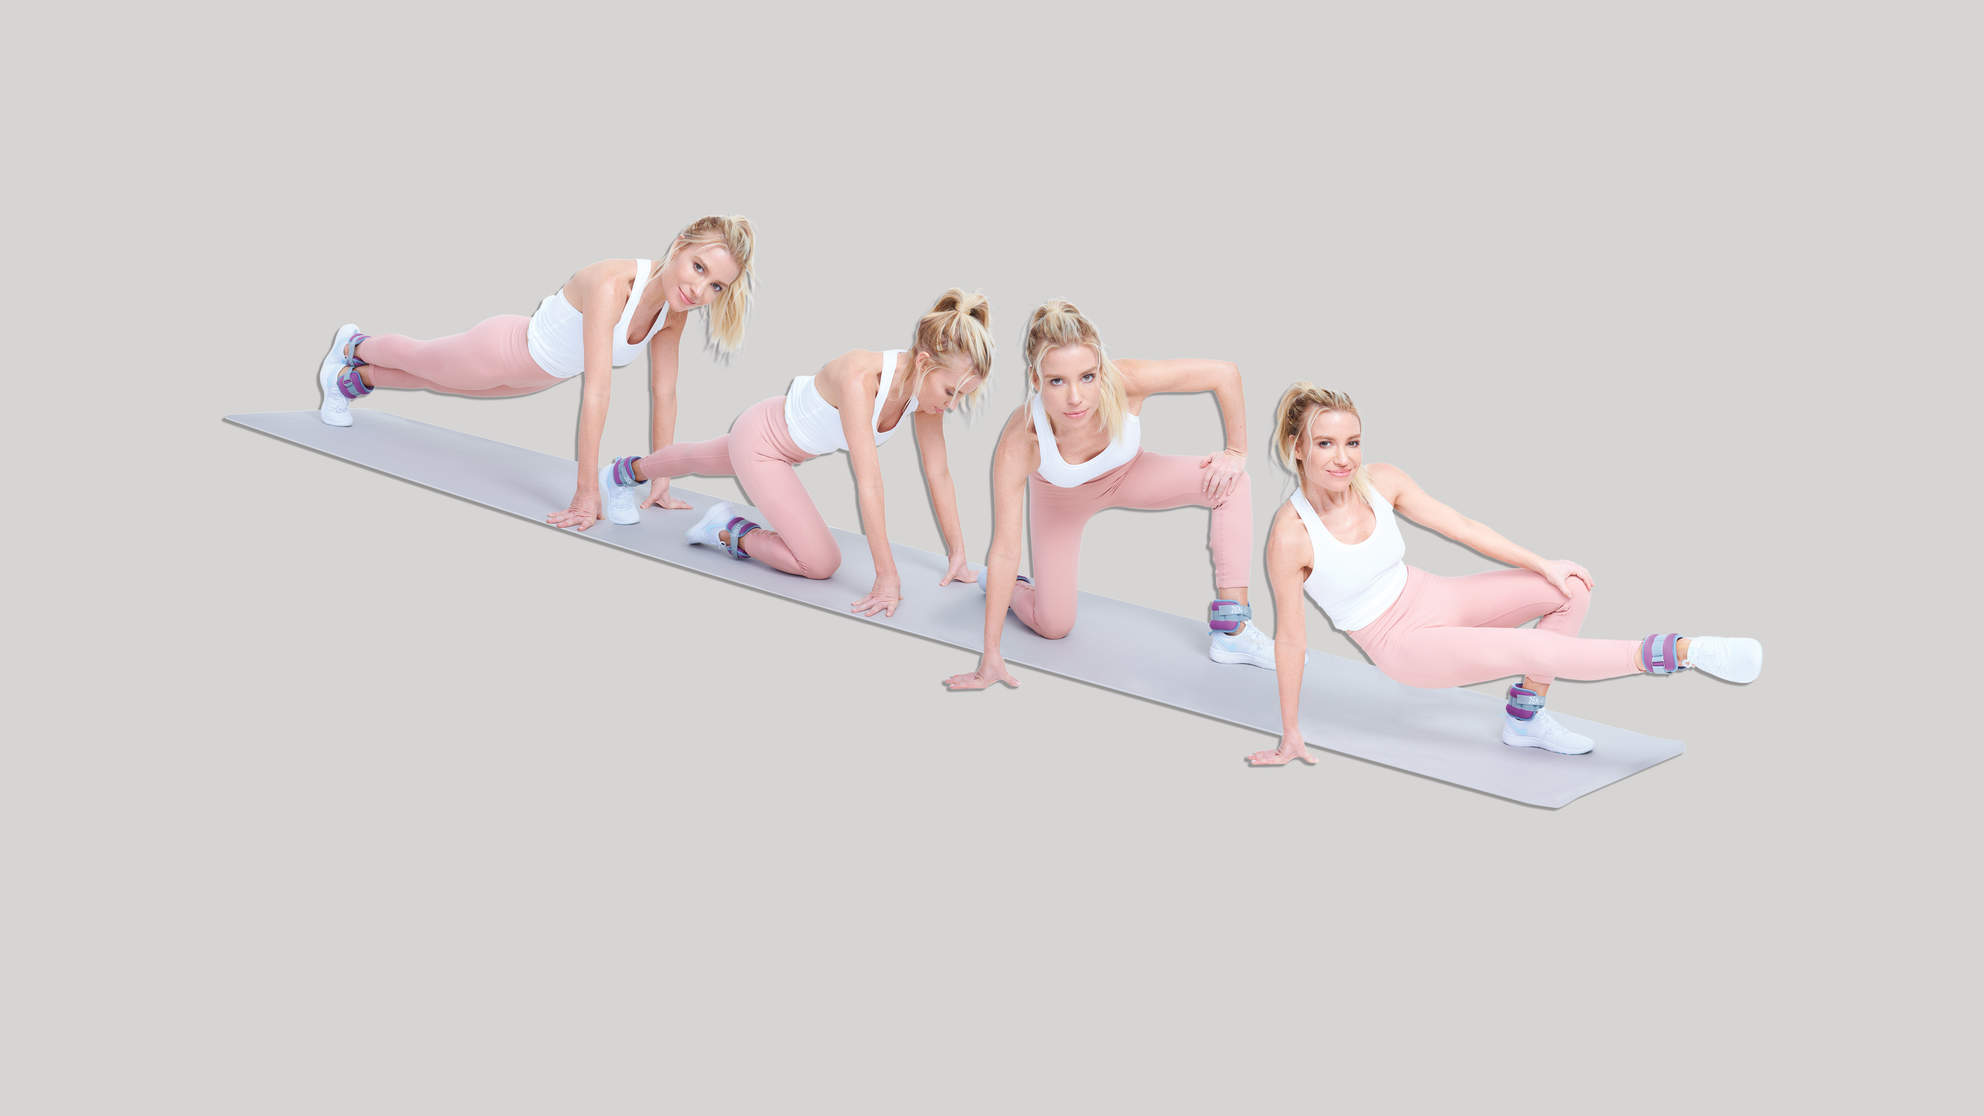 tracy-anderson-may-sus-plank-front-kick